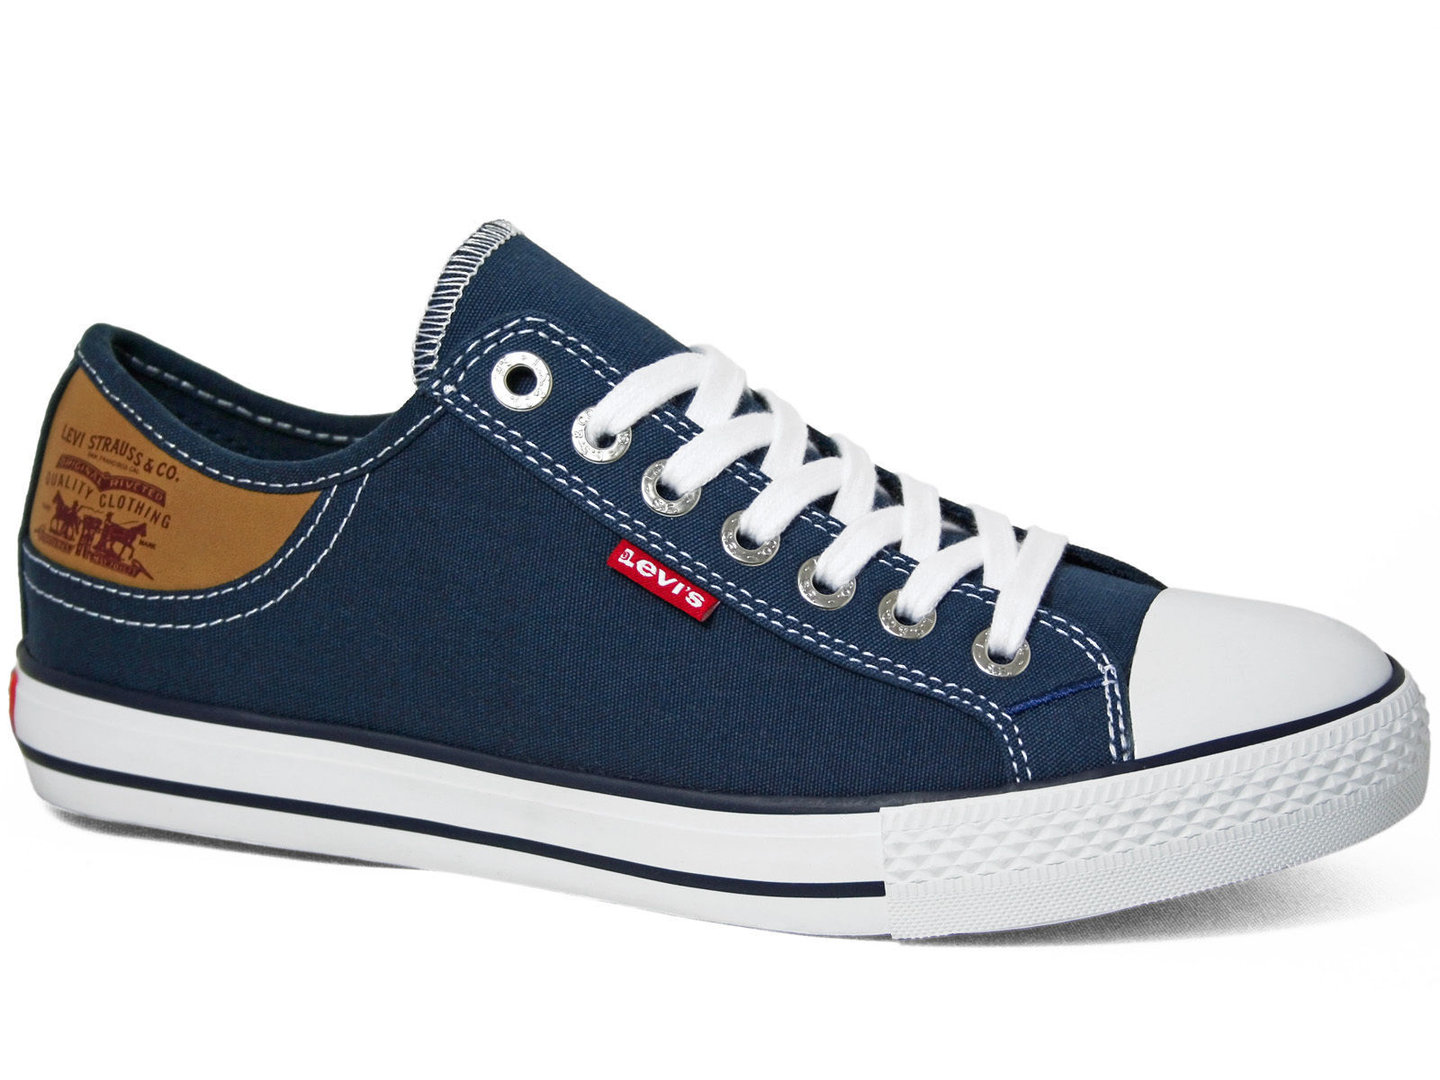 Levi S Casual Shoes Online Shopping